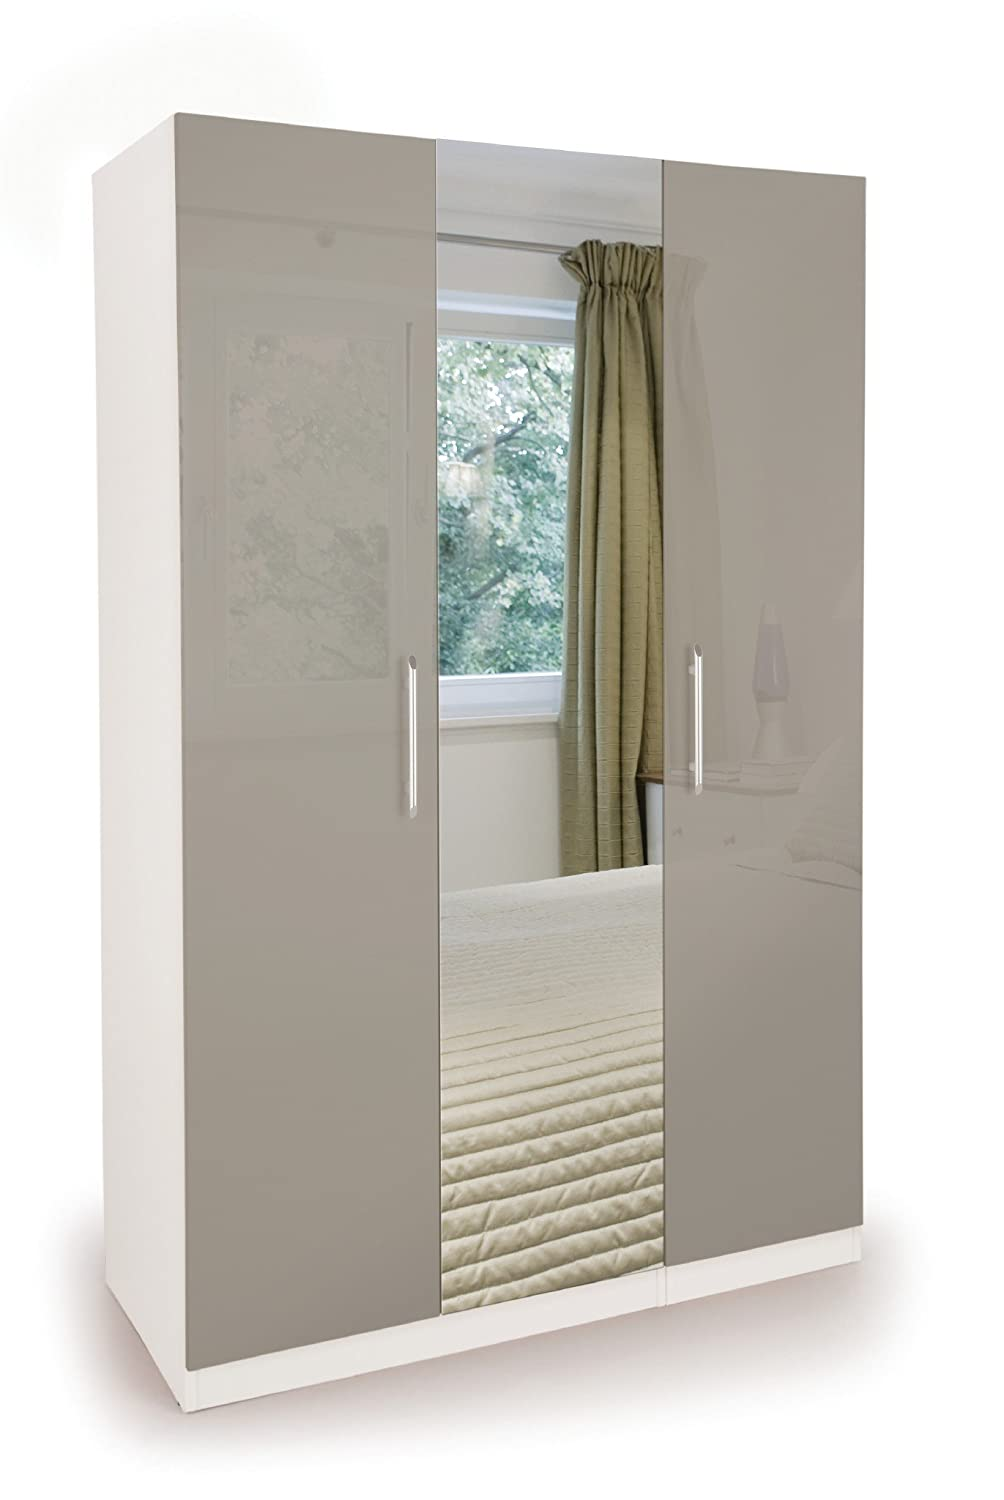 Regal New Modern Combination Wardrobes Set In White Grey High Gloss (1 Door Wardrobe) 2-37-H151020-H170220 Poland